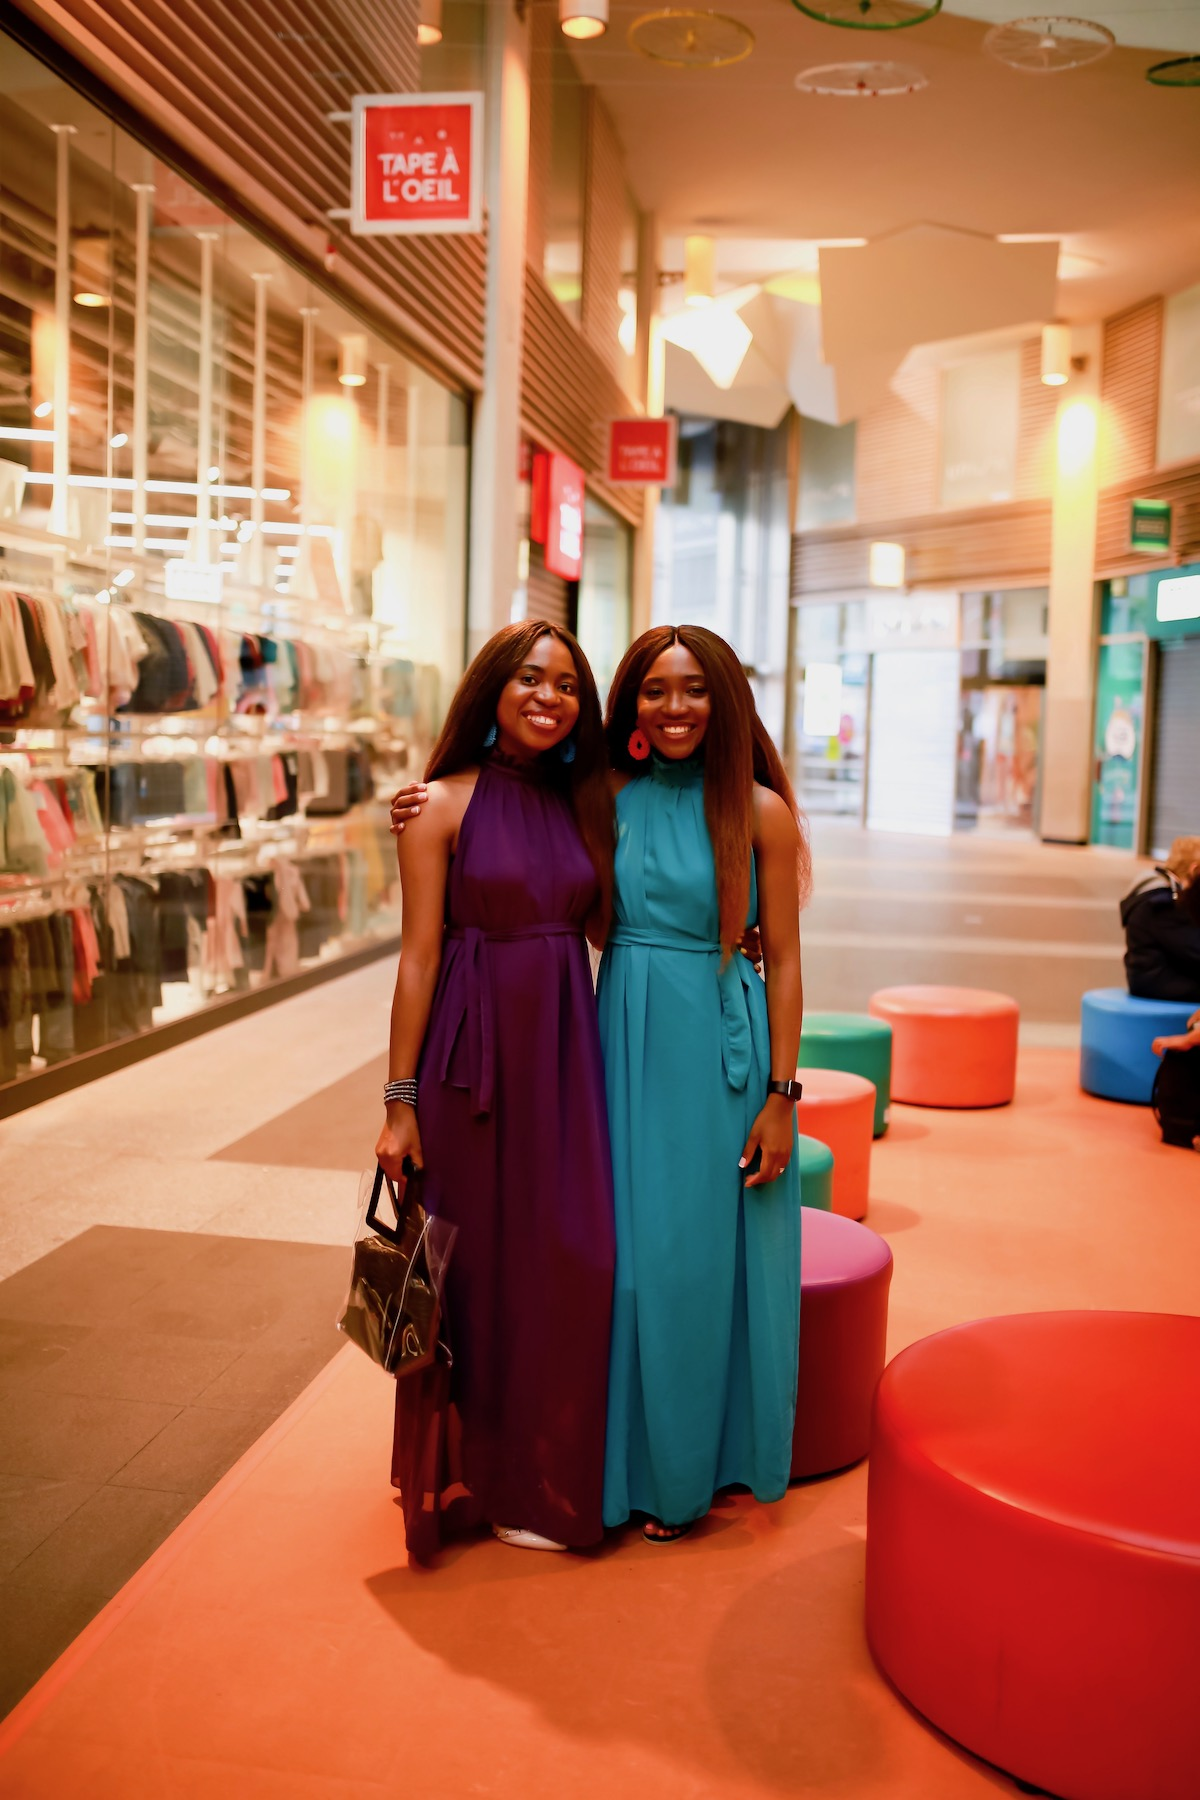 Louisa and Lydia - the women behind Africa Wanderlust